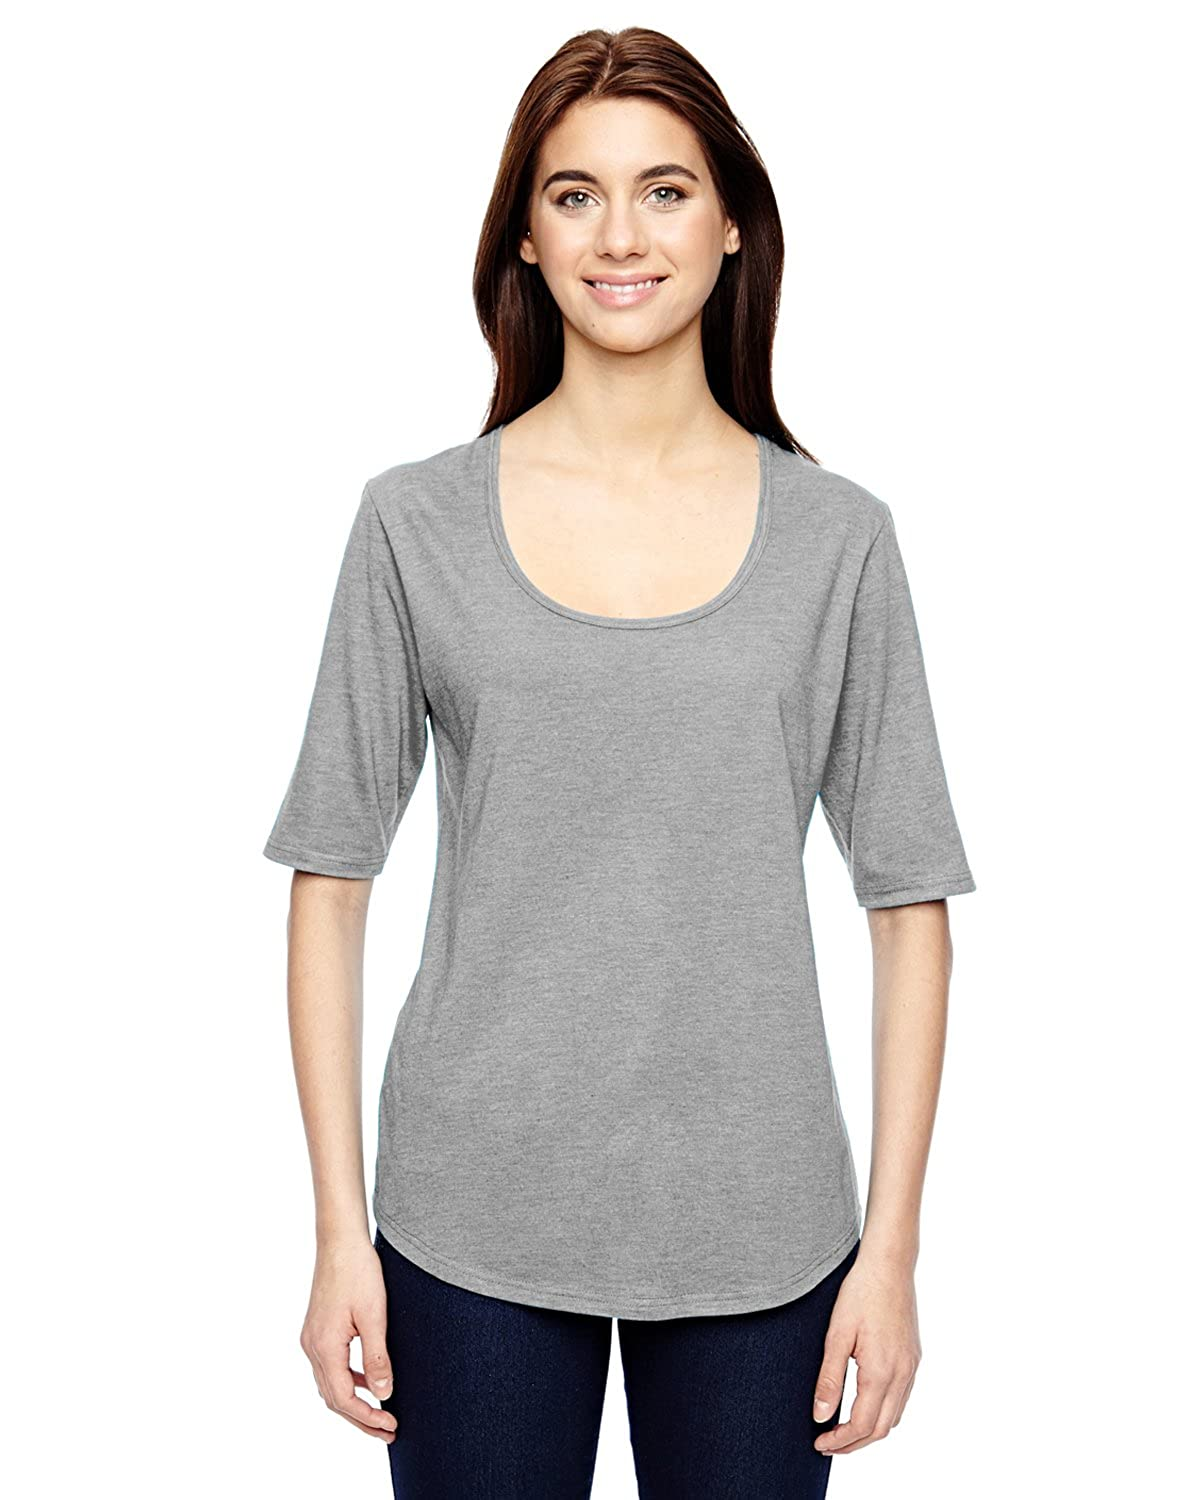 571940baf42 Top1  Anvil 6756L Ladies  Triblend Deep Scoop Half-Sleeve T-Shirt Cotton  Blend